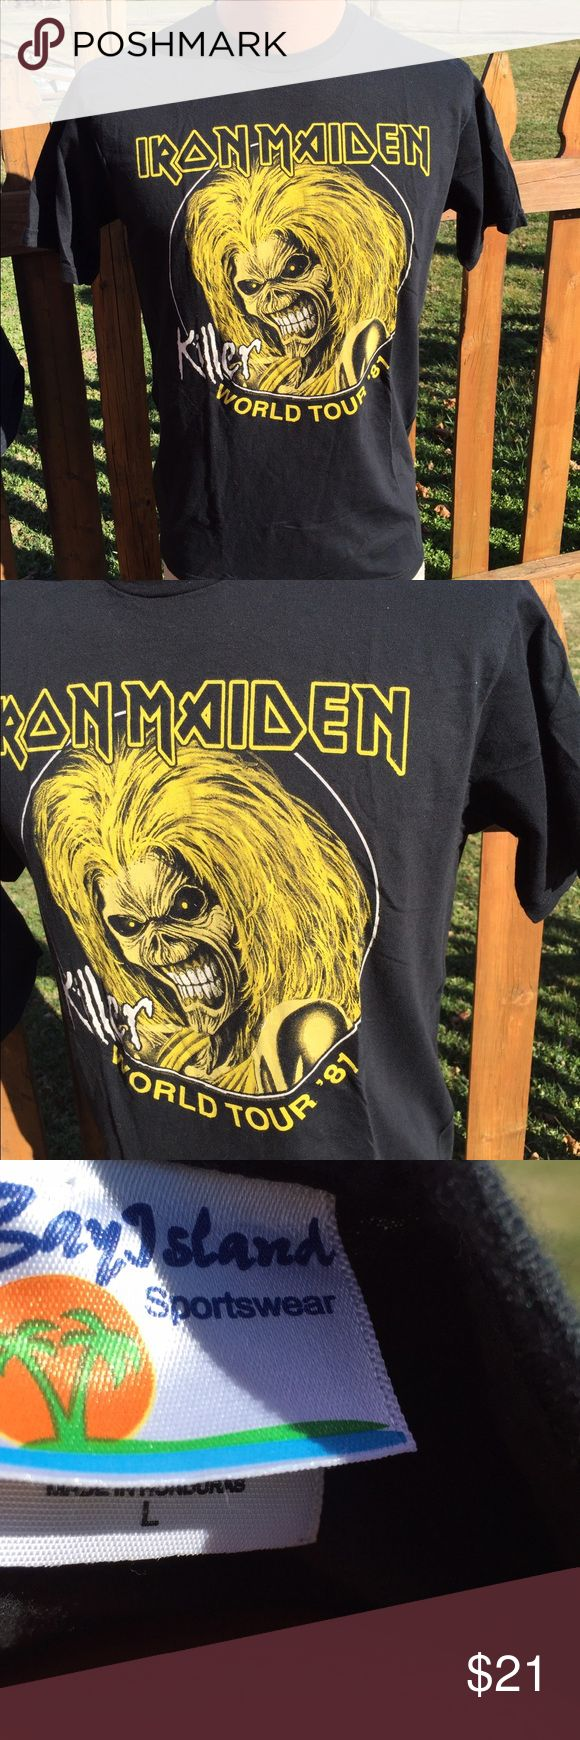 Iron Maiden Band World Tour T Shirt Size Large Size large. No graphics on back. Dated 2006 under the graphics. Be sure to view the other items in our closet. We offer both women's and Mens items in a variety of sizes. Bundle and save!! Thank you for viewing our item!! Bay Island  Shirts Tees - Short Sleeve